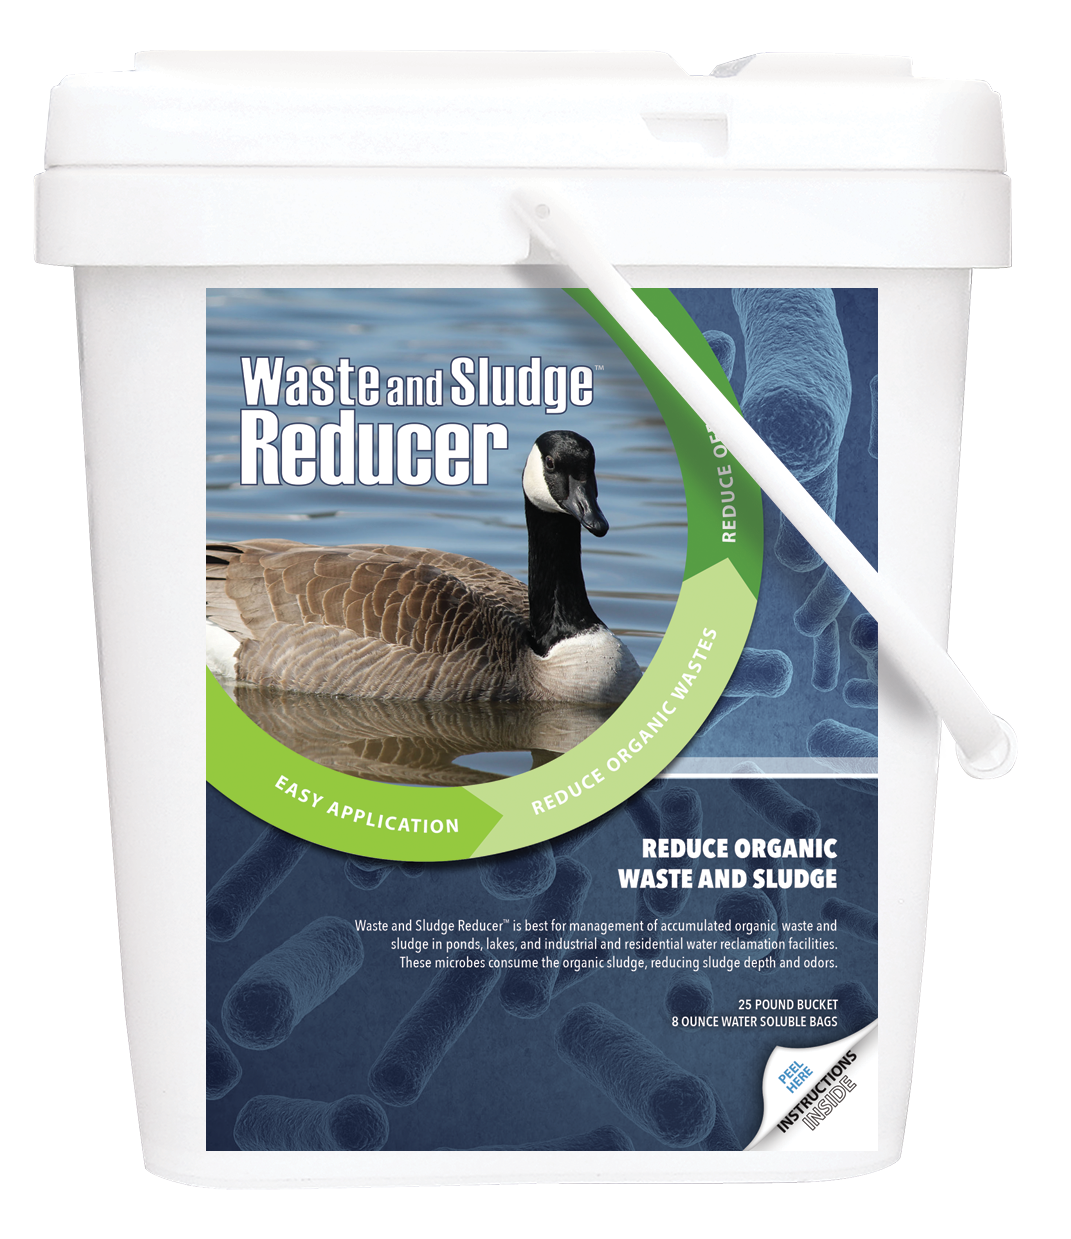 Waste and Sludge Reducer™